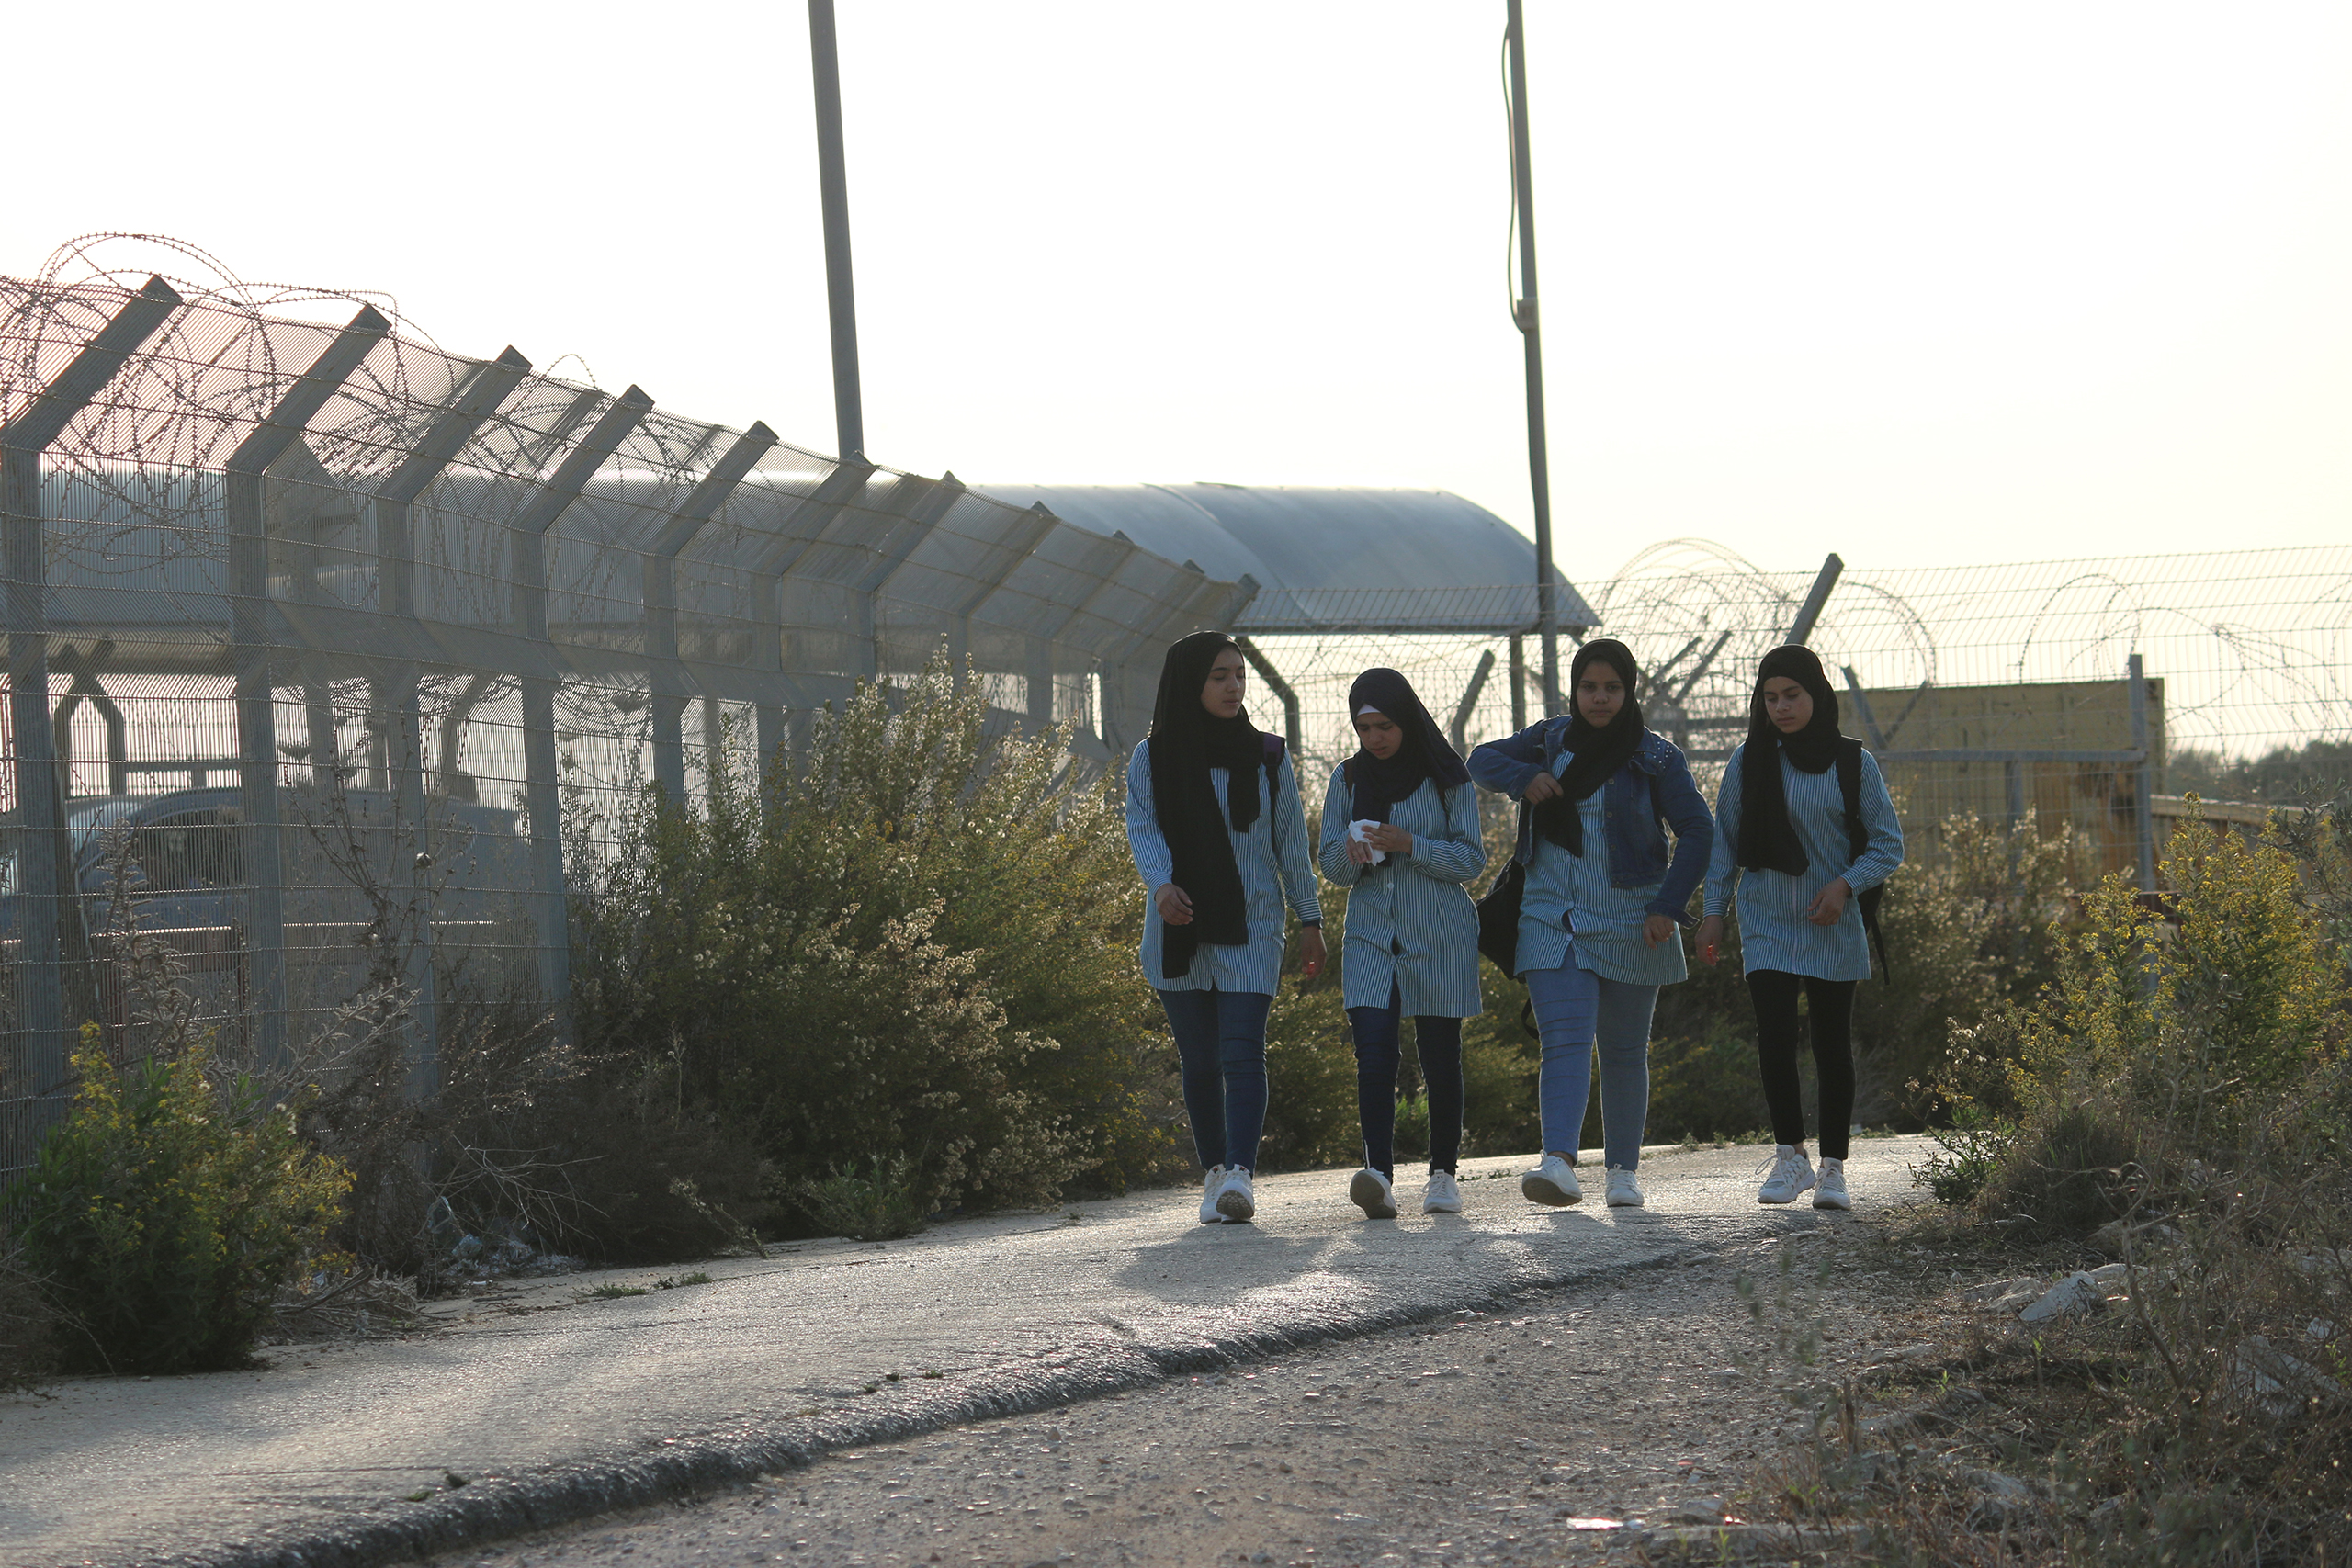 Palestinian students from Dahr Al-Maleh walk toward their school in Tura Al-Gharbiya village after crossing the Israeli military checkpoint on November 07, 2019. (Photo: DCIP / Ahmad Al-Bazz)